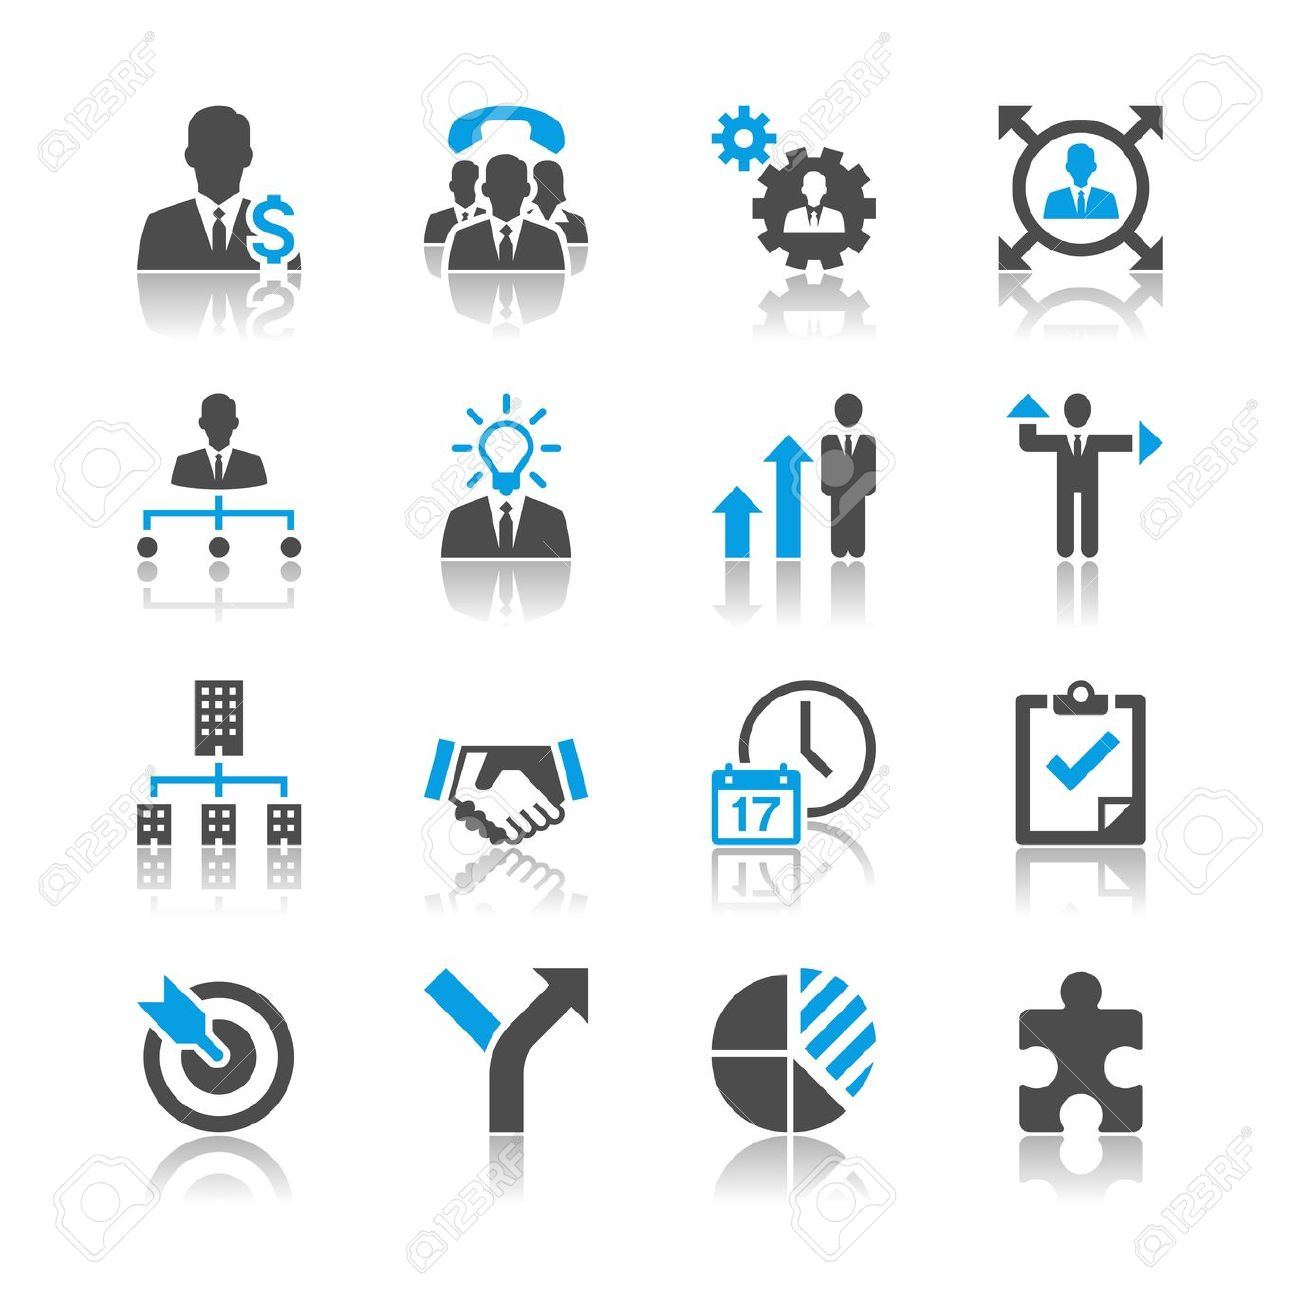 Business sales multi task icon free clipart.